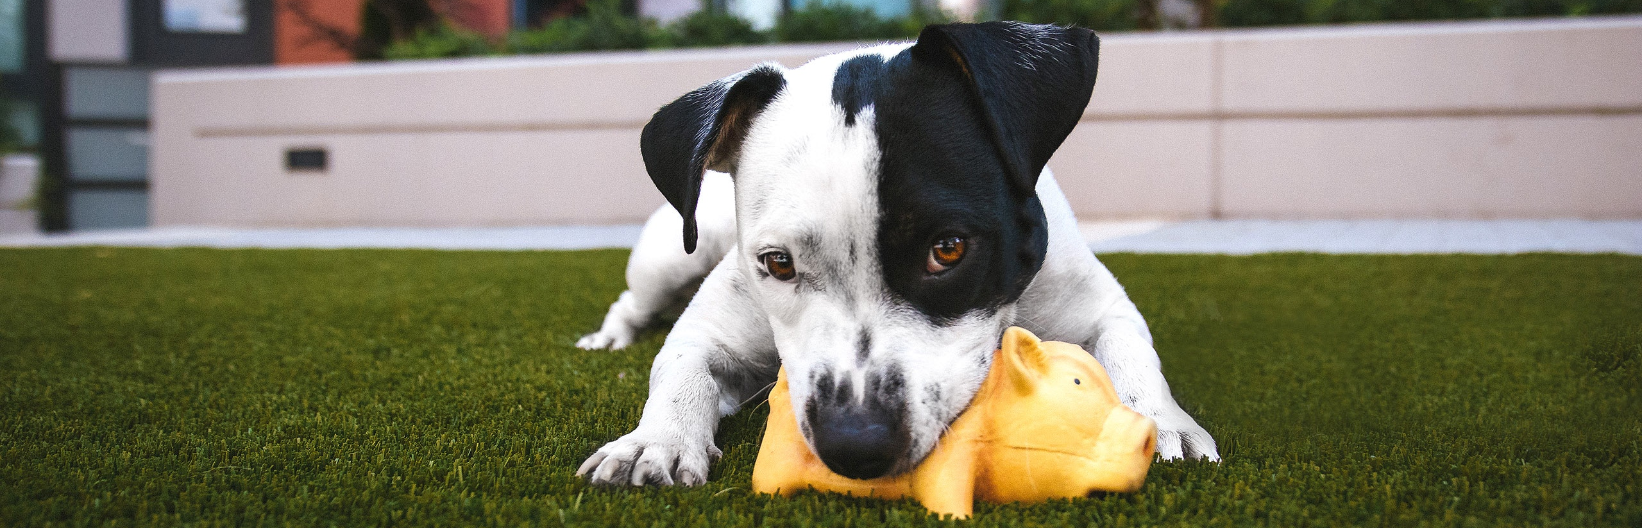 Black and white dog chews on a toy